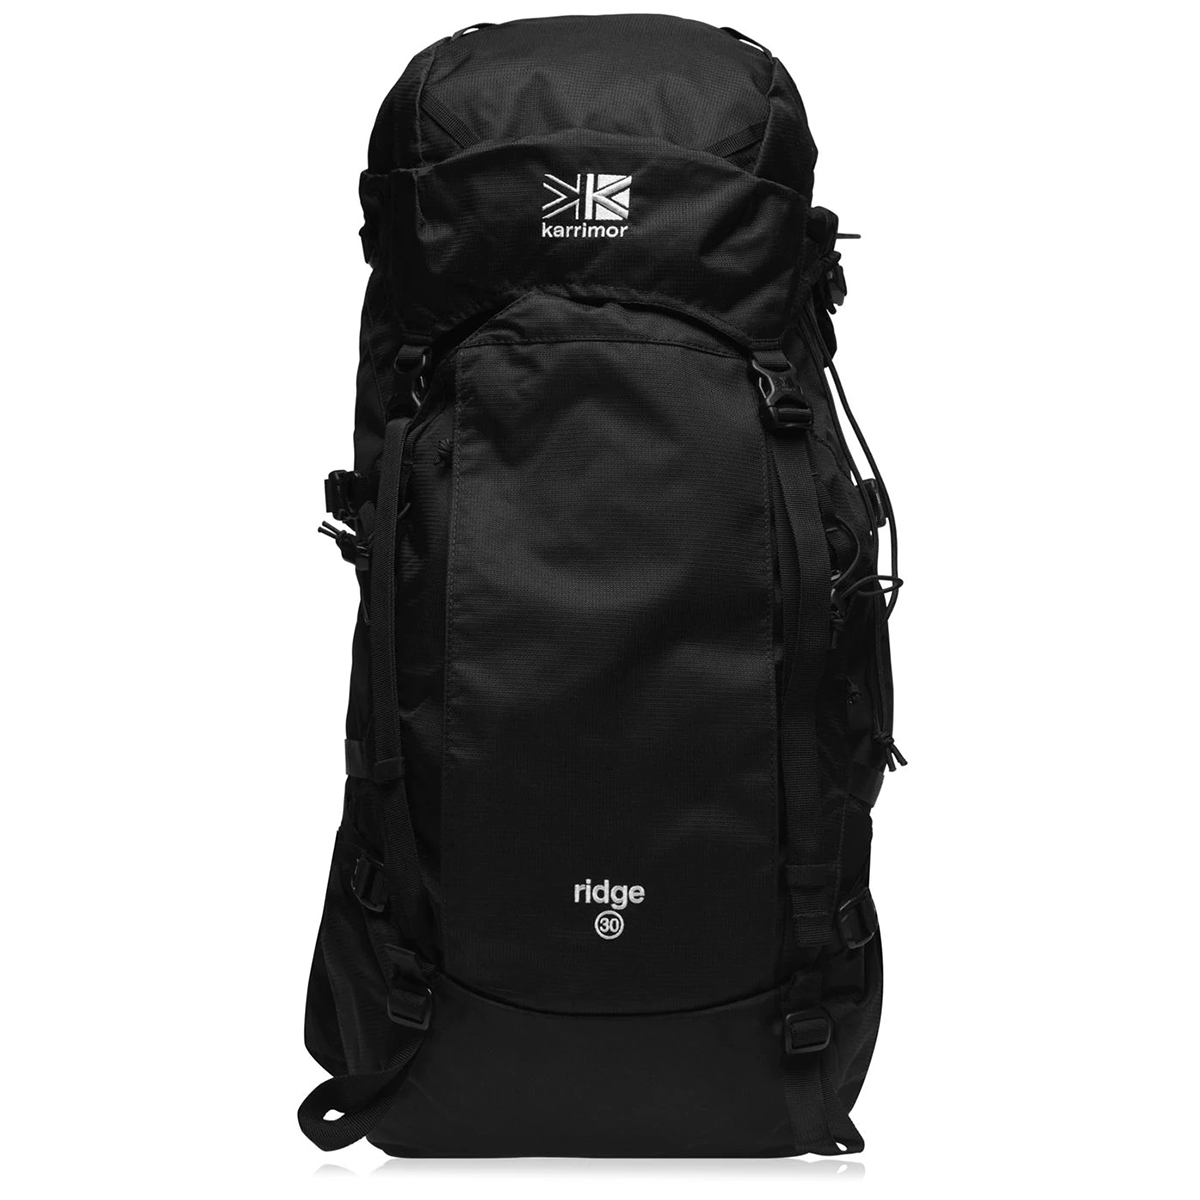 Karrimor K1 Ridge 30 Backpack - Black, ONESIZE